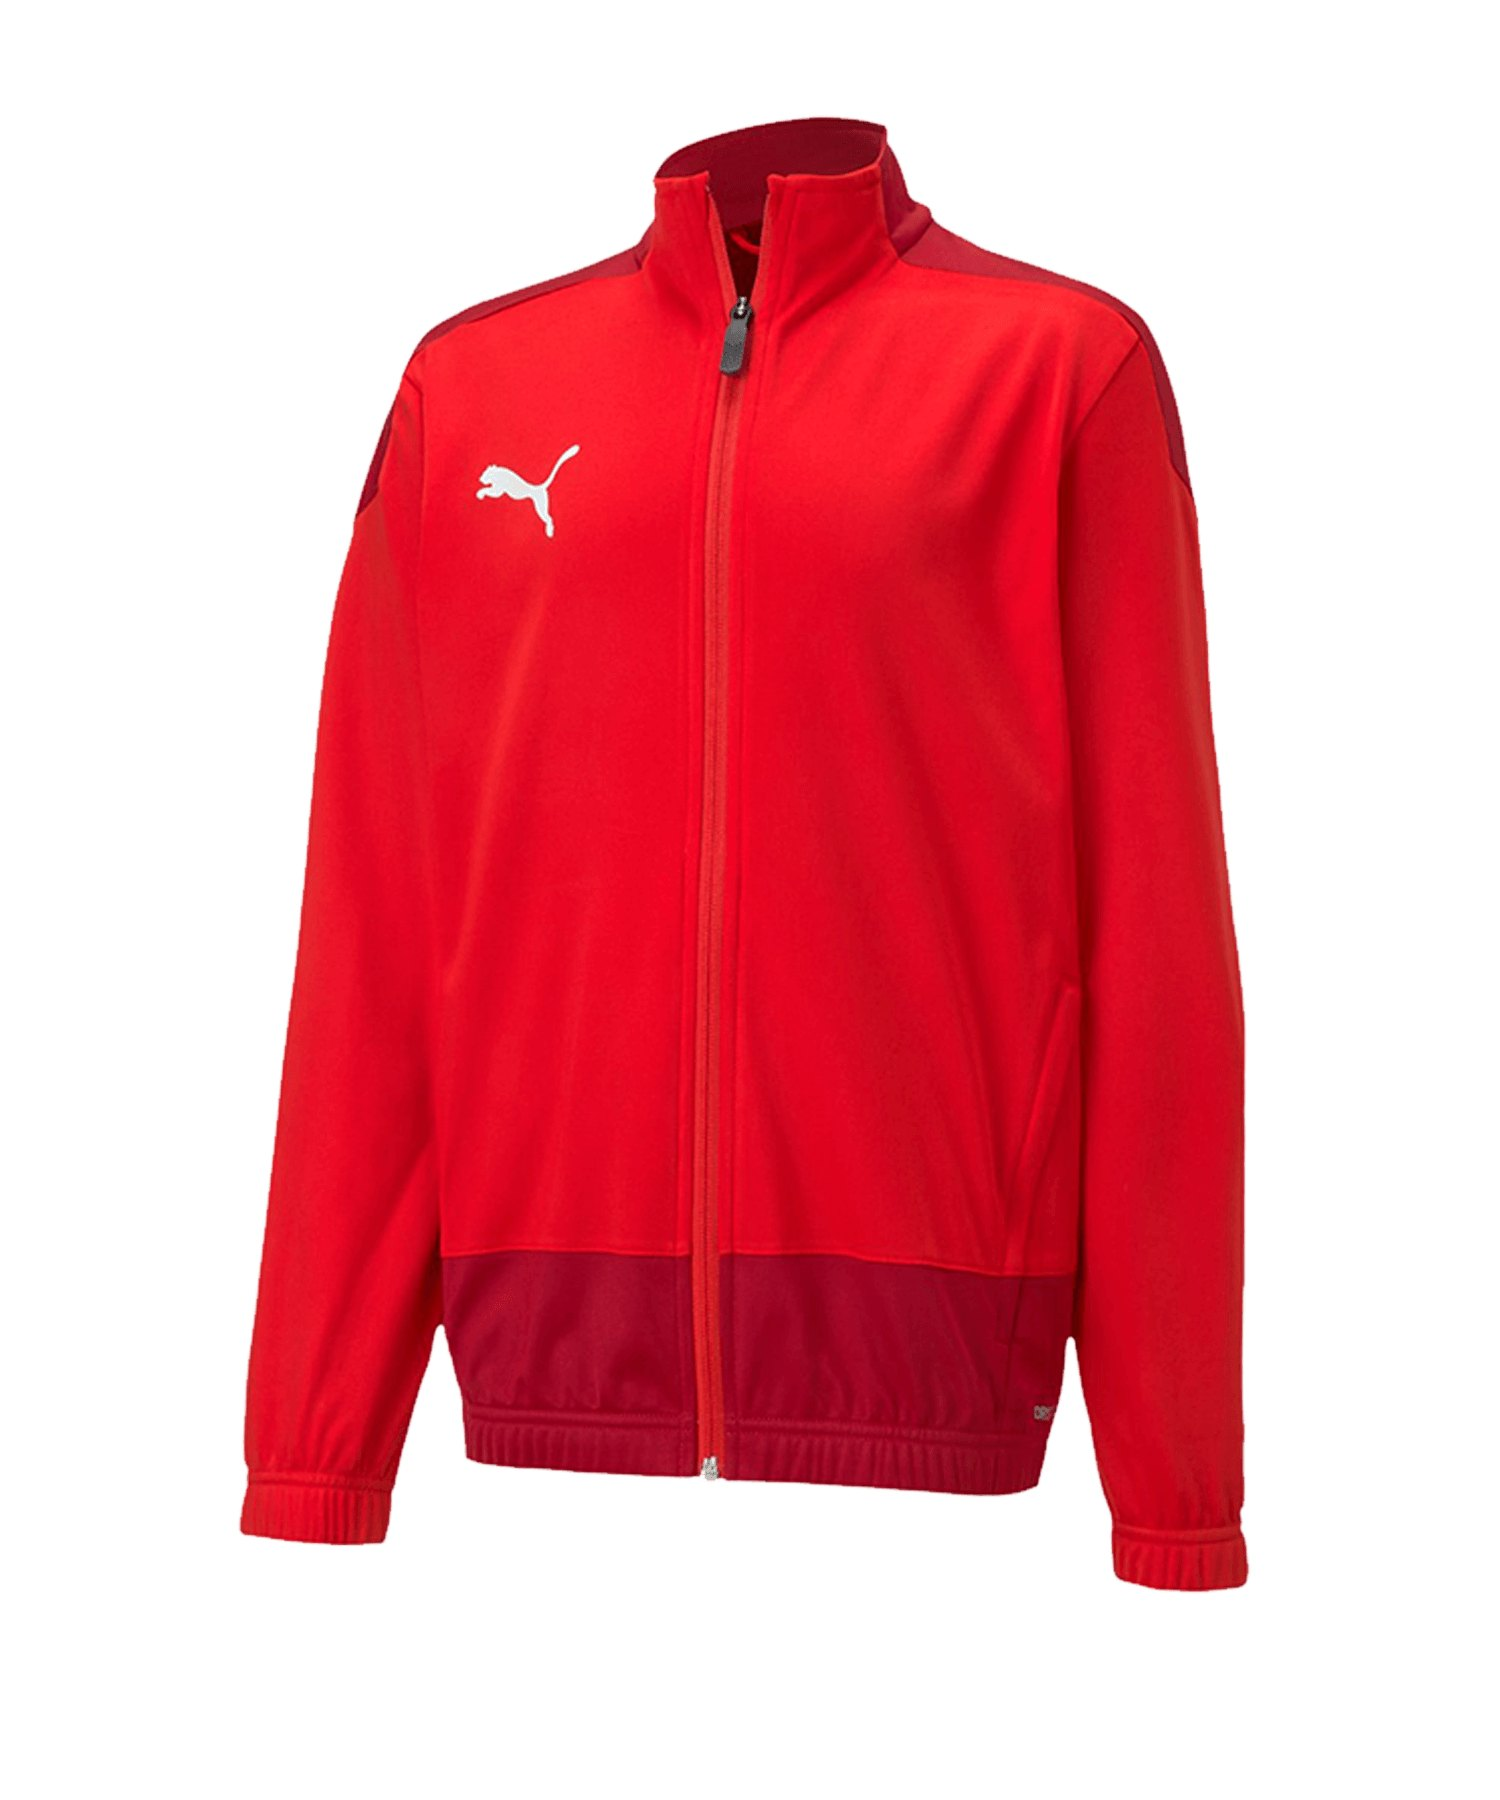 PUMA teamGOAL 23 Training Jacke Kids Rot F01 - rot